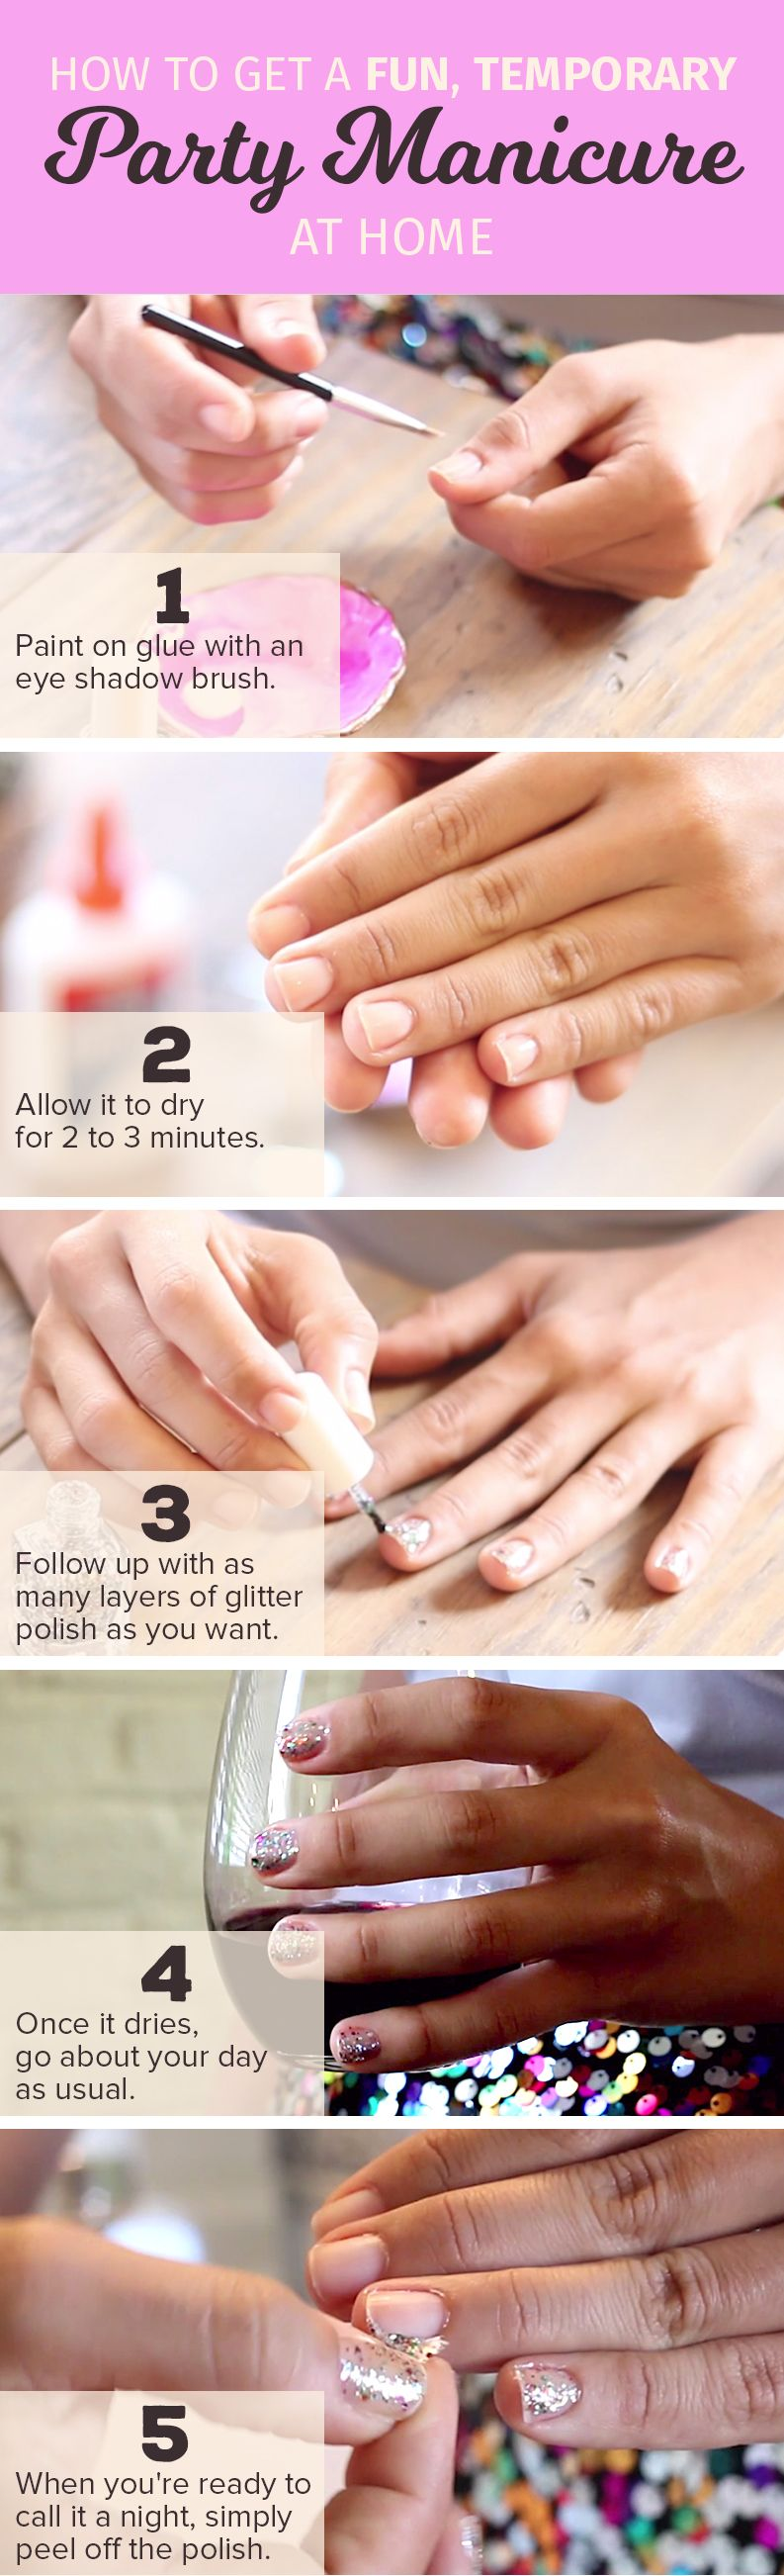 Here's how Elmer's glue will give you a perfect manicure